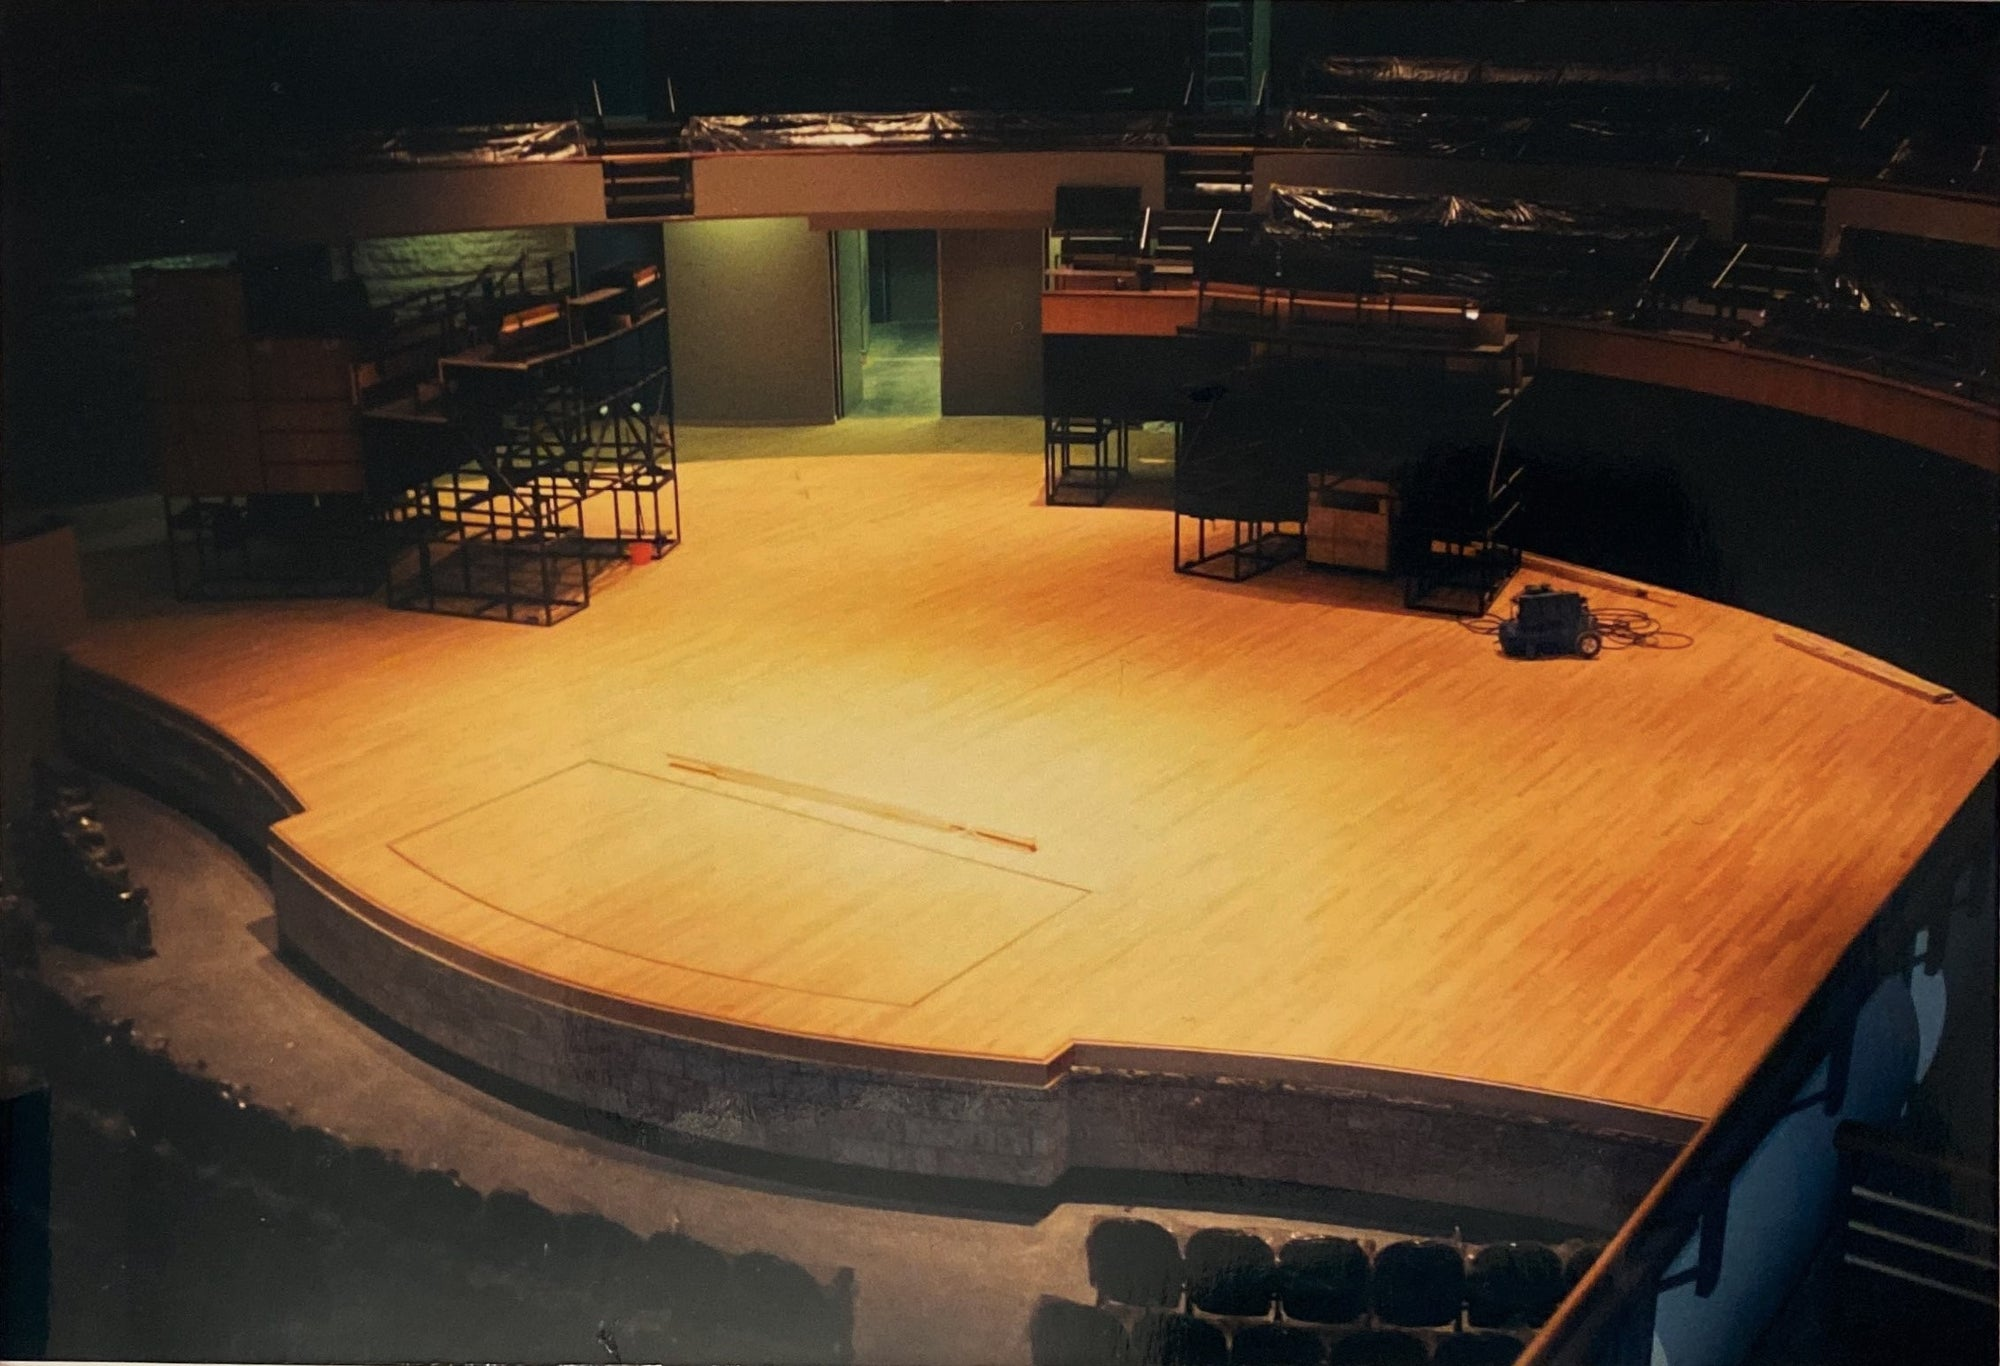 Alberta Hardwood Flooring, Sand and Refinish, The Winspear Center.